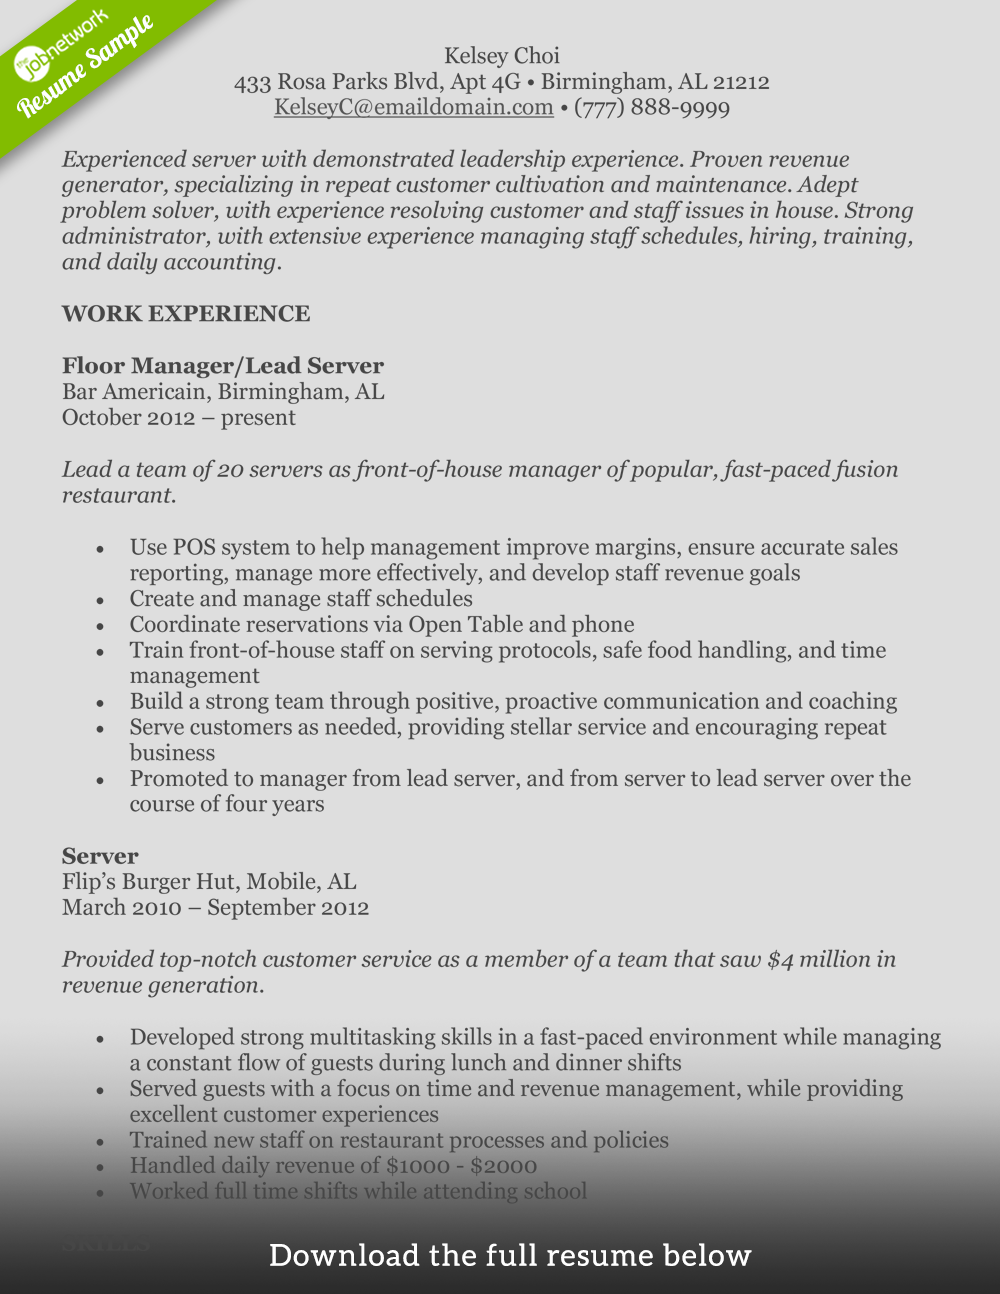 Experience Resume Examples | How To Write A Perfect Food Service Resume Examples Included